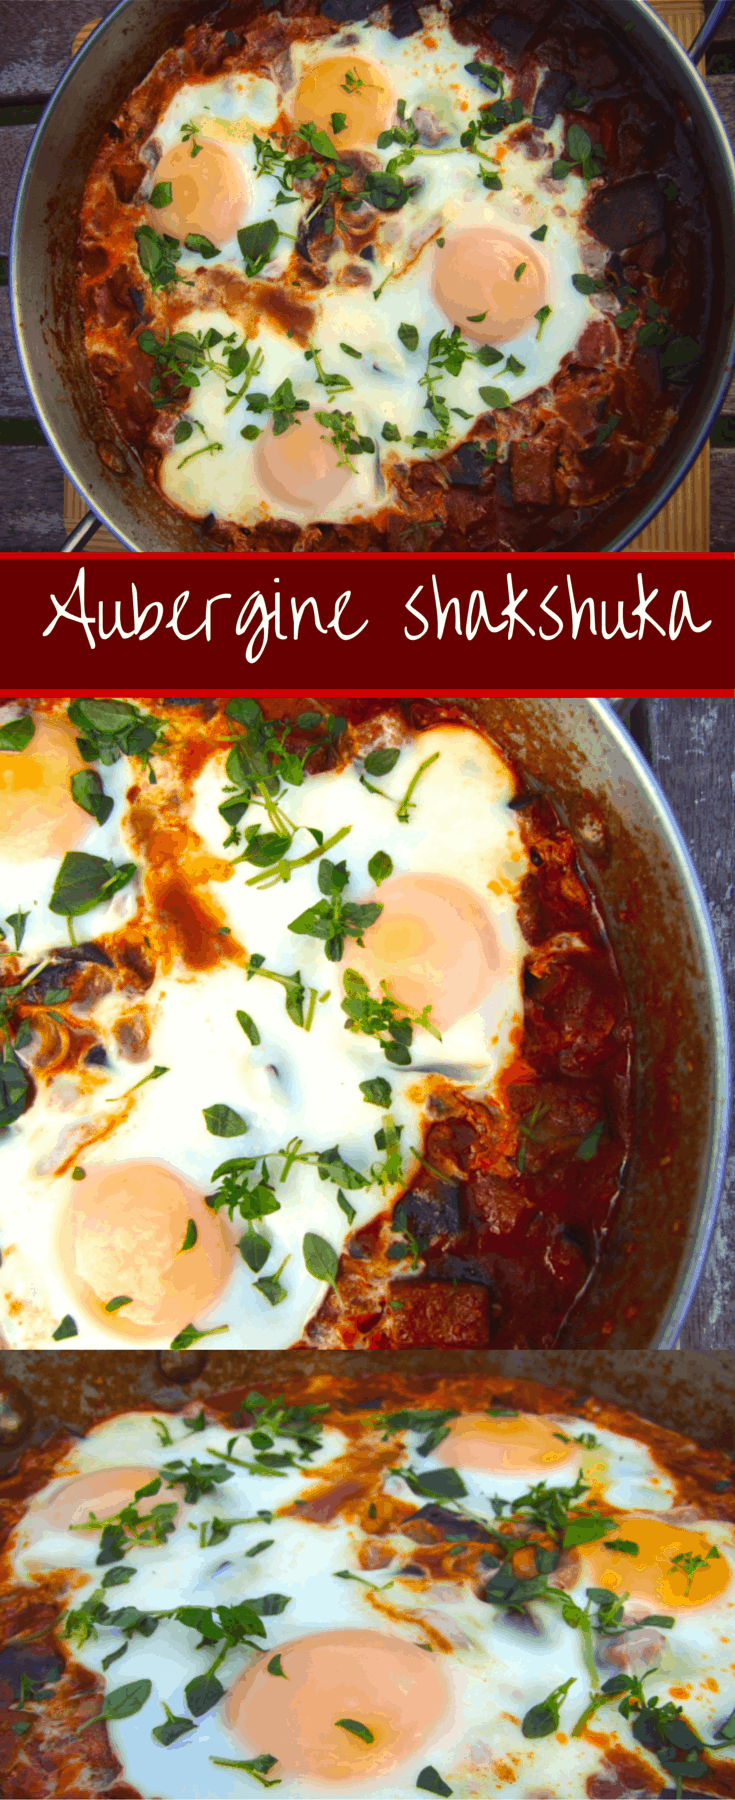 A spicy, garlicky, saucy shakshuka with aubergine (eggplant) that makes a great breakfast, brunch or dinner! Serve with pita bread to soak up the sauce.